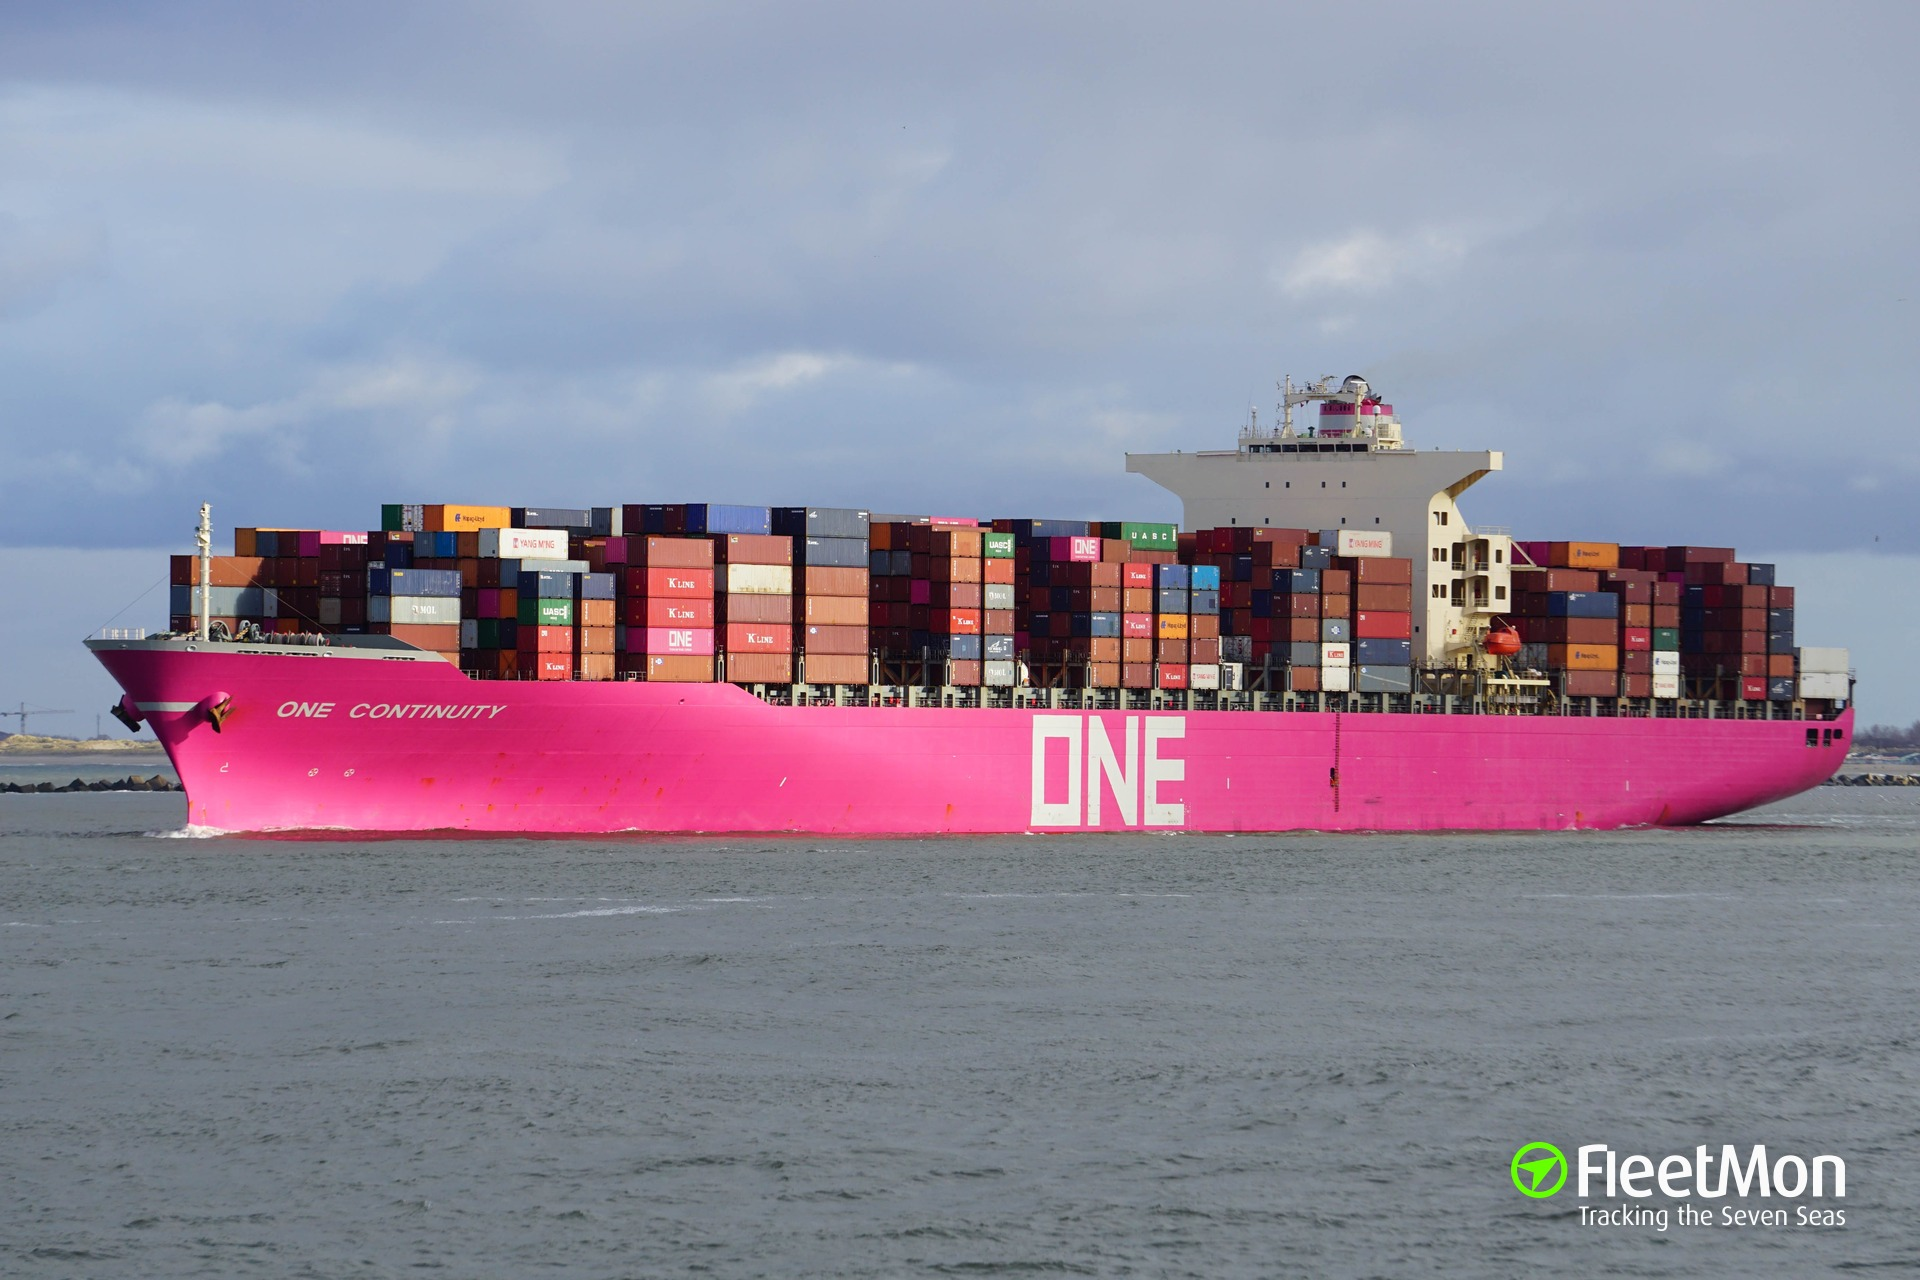 one container tracking